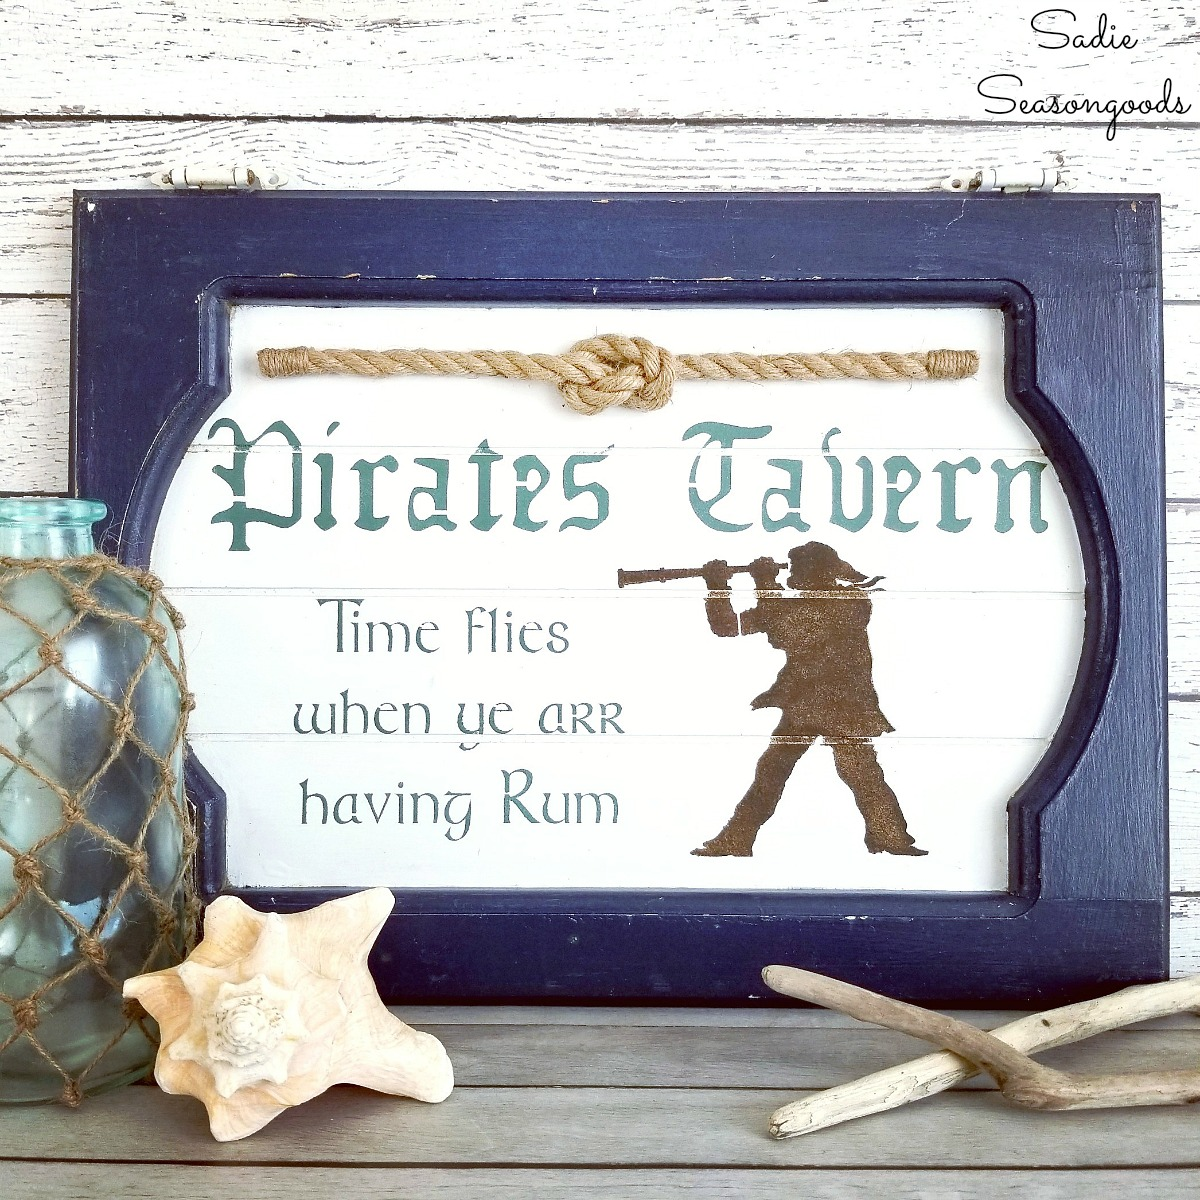 Pub Sign / Pirate Decor from a Cabinet Door